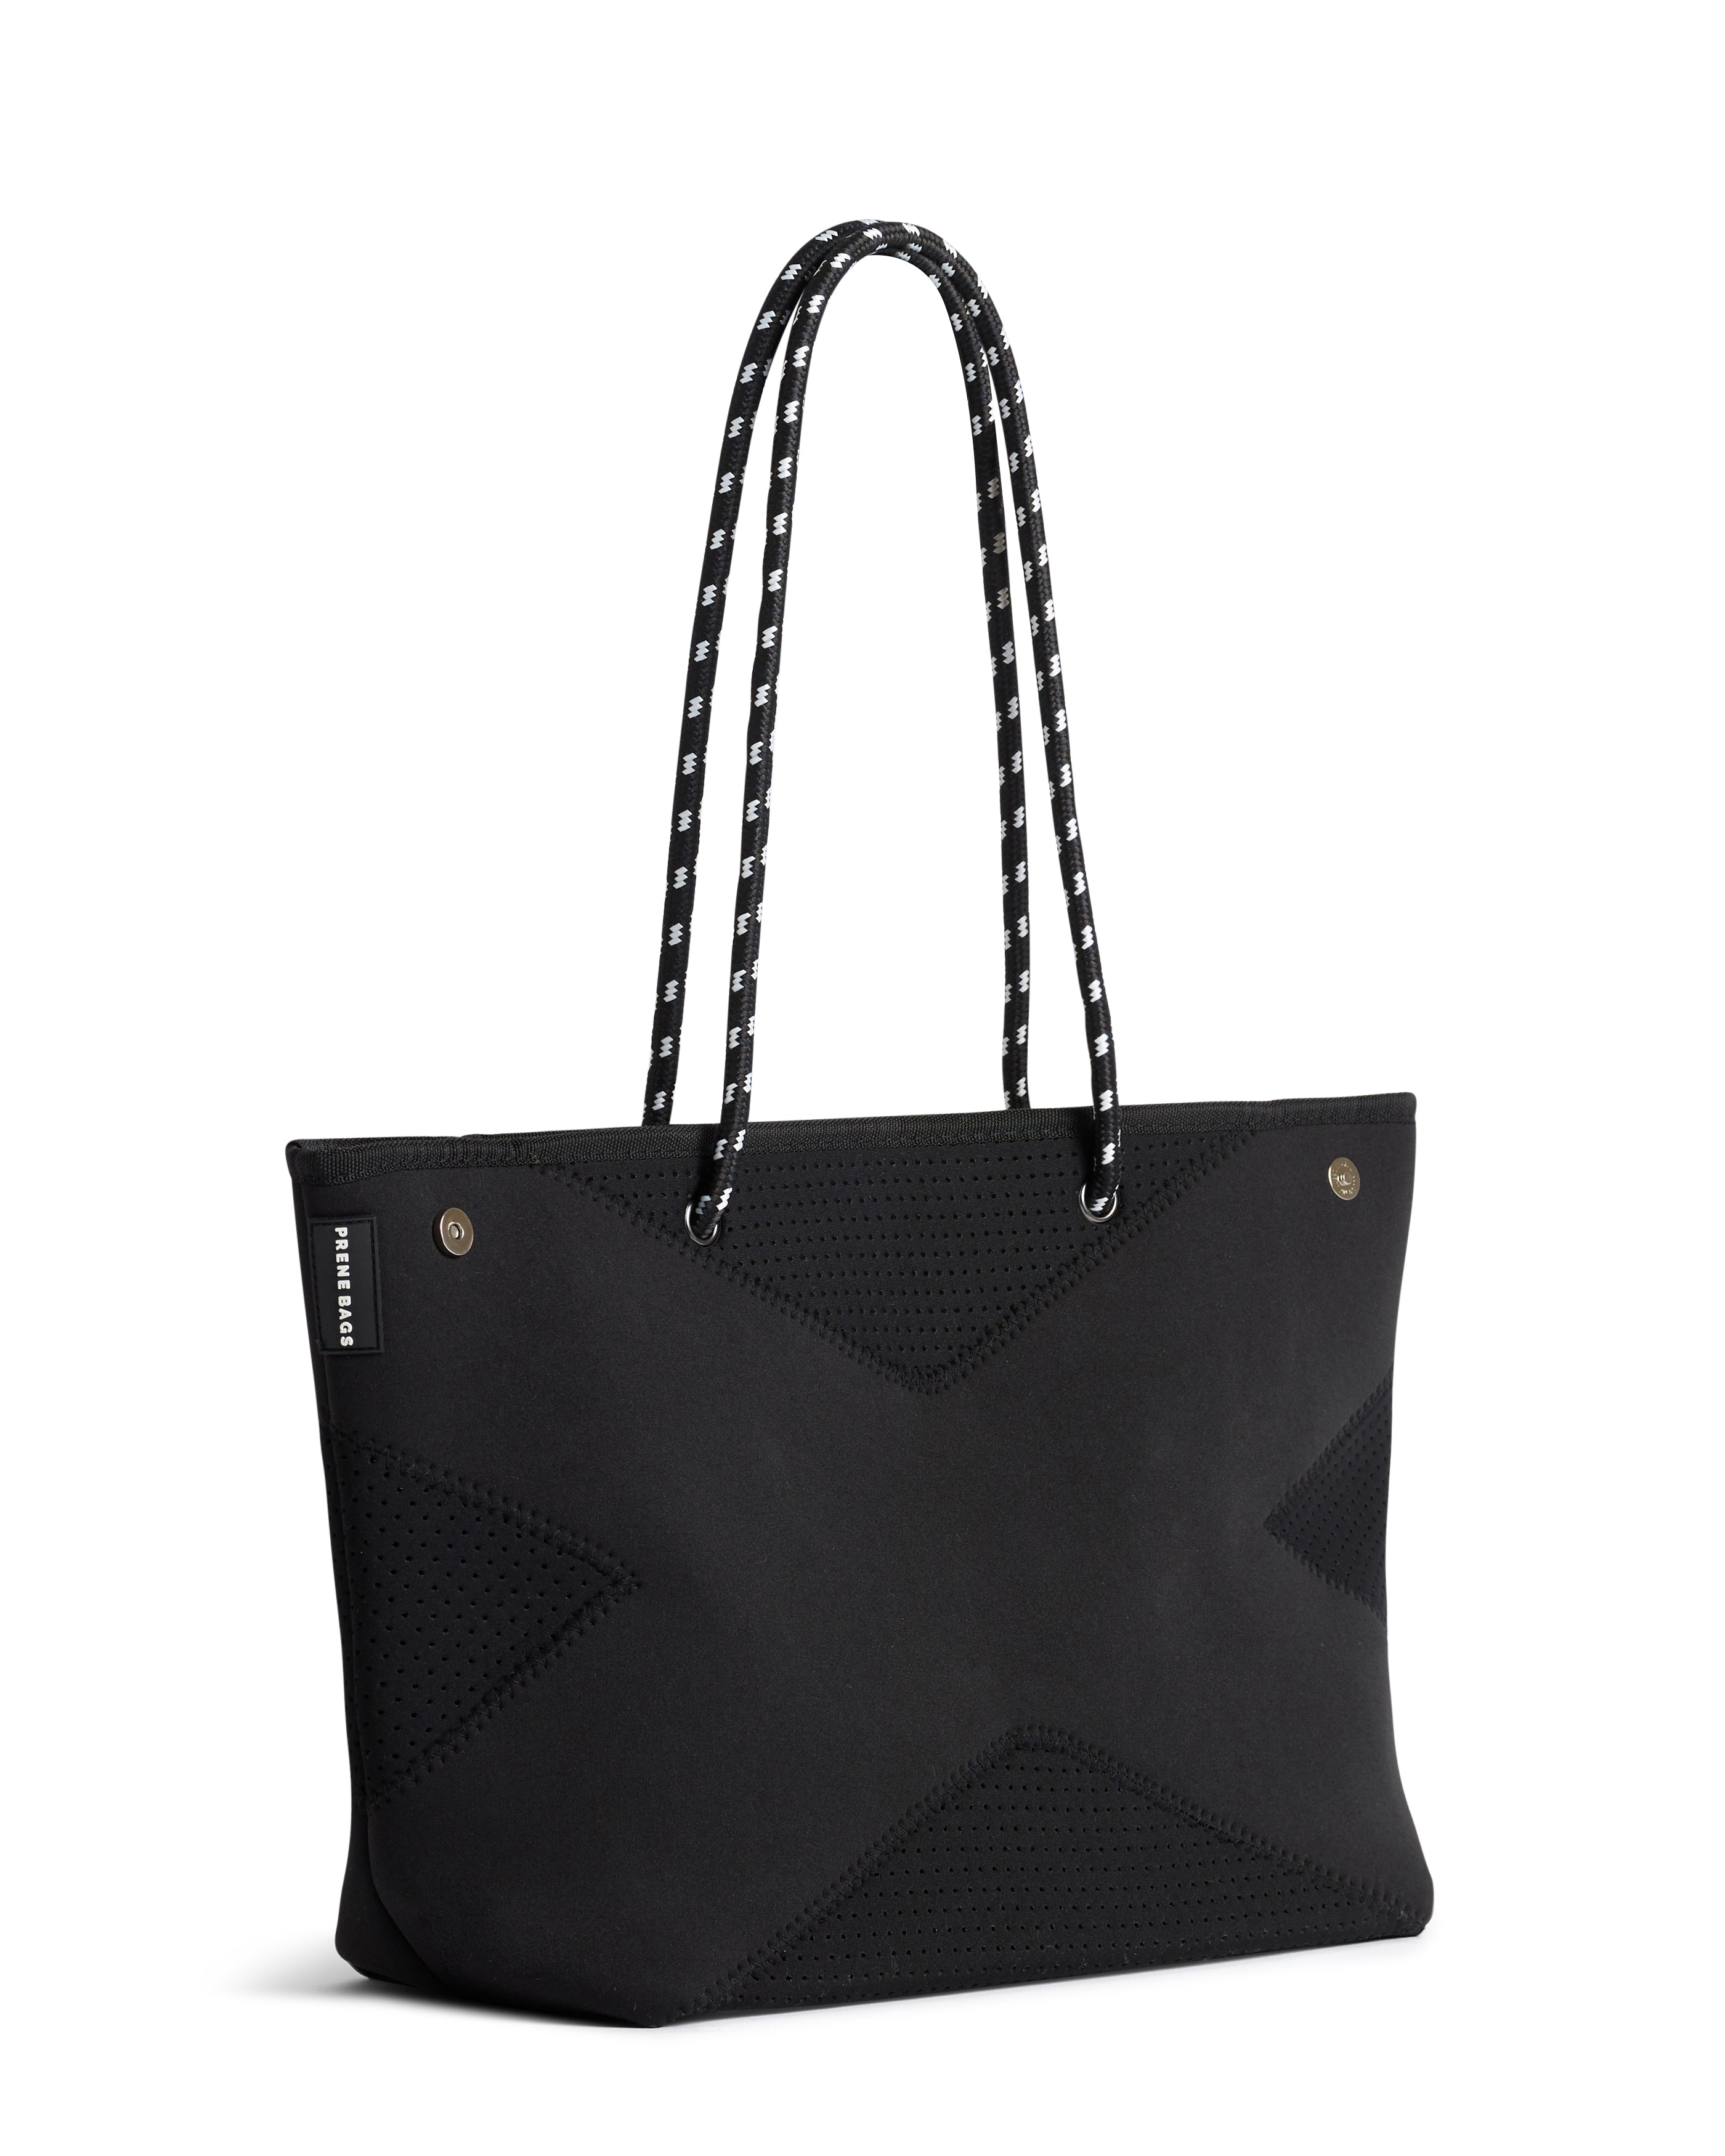 THE X-BAG (BLACK)